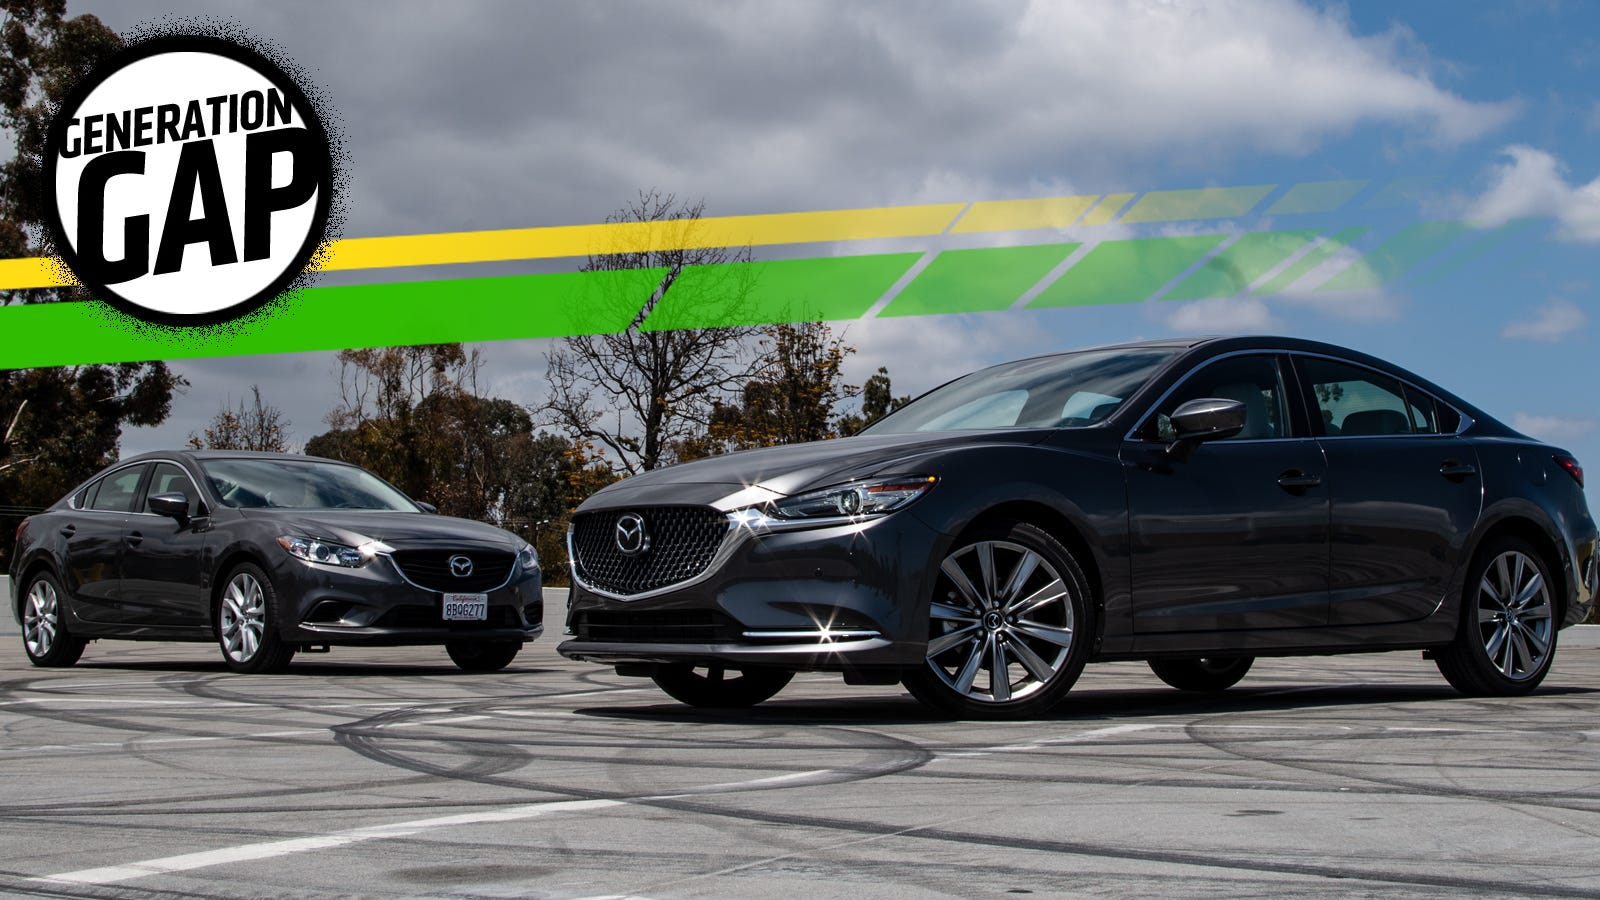 Here's A Close Comparison Between The 2018 Mazda 6 And The 2017 Mazda 6